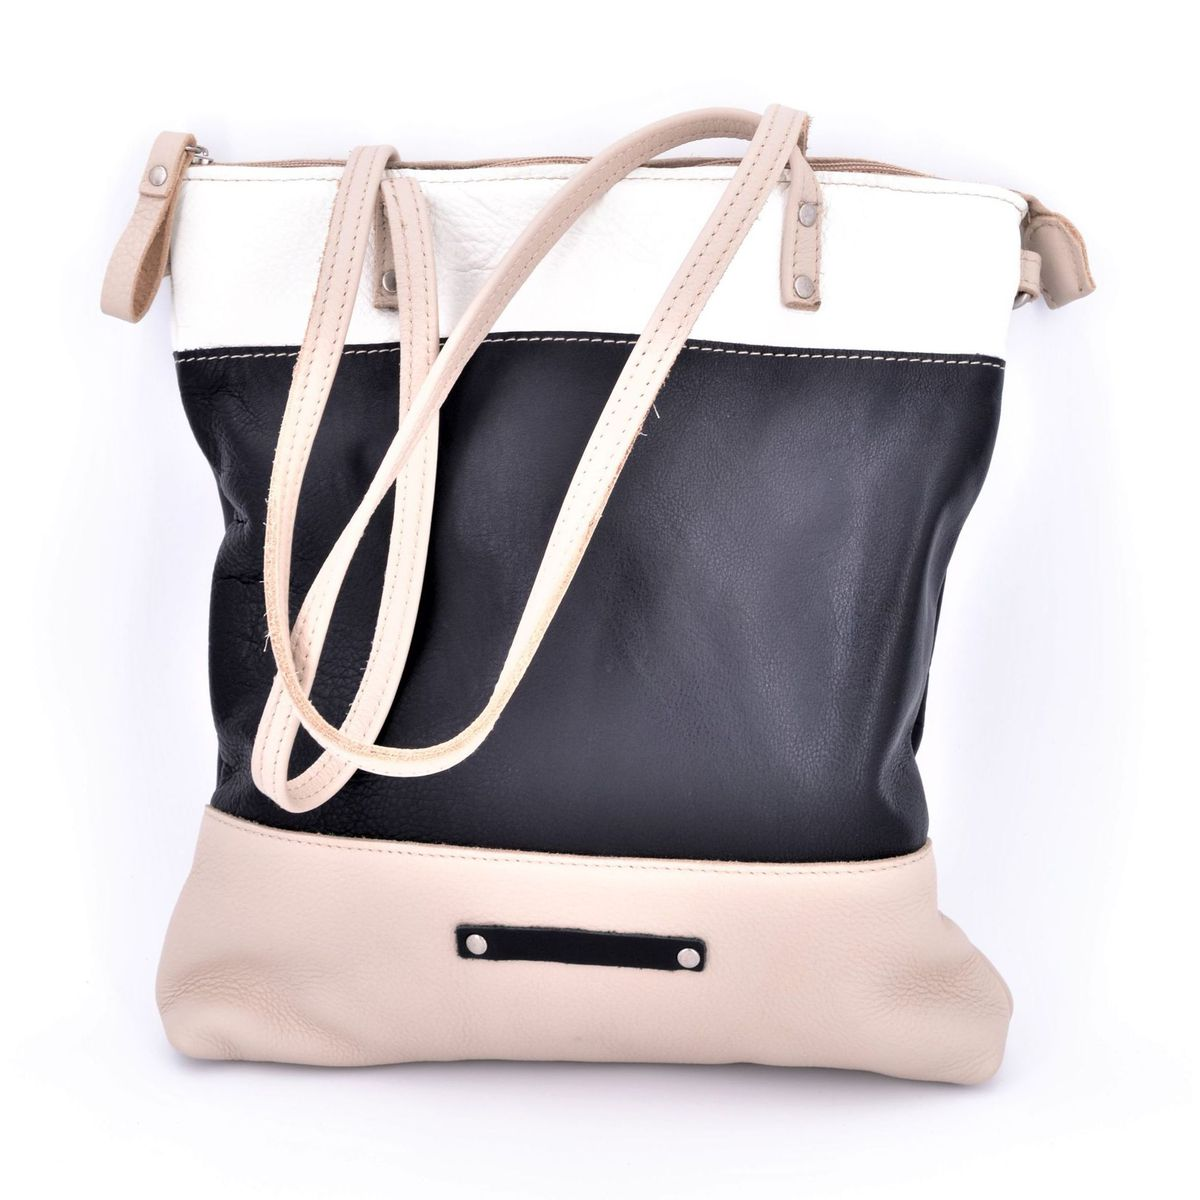 3 colors leather bag with shoulder strap Black BRASS Workshop